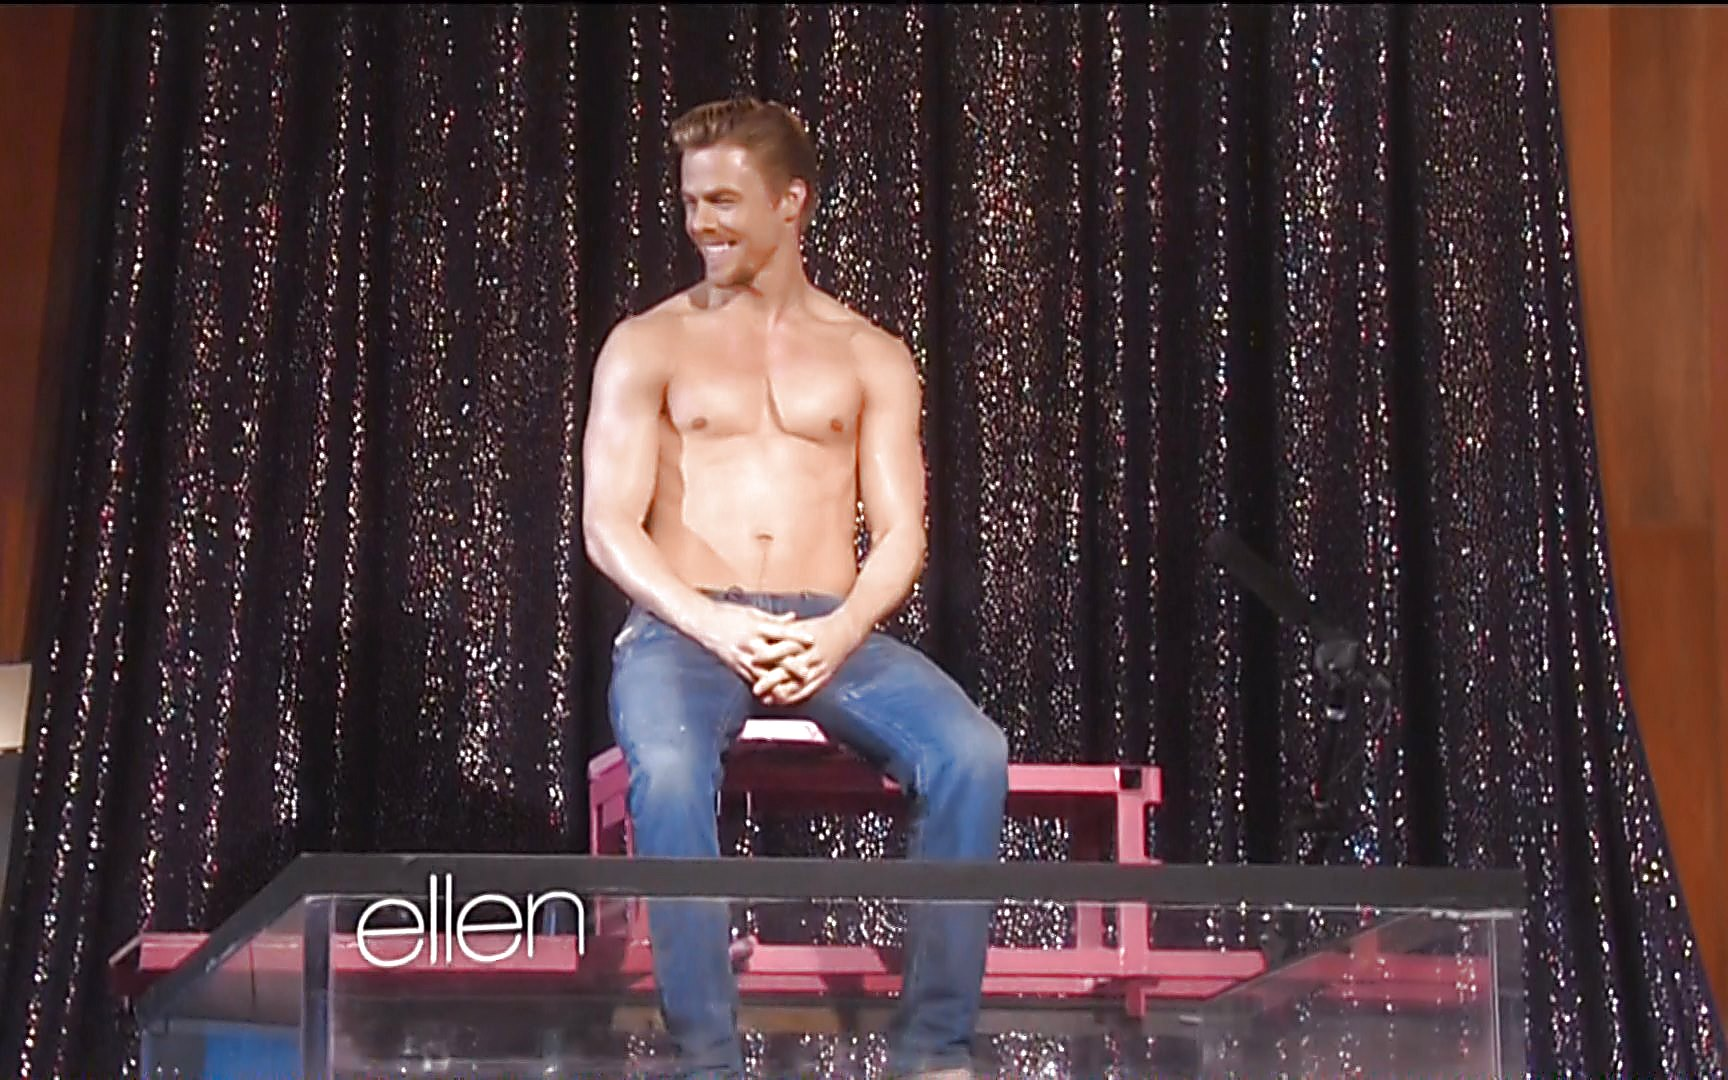 Derek Hough sexy shirtless scene November 2, 2014, 9pm